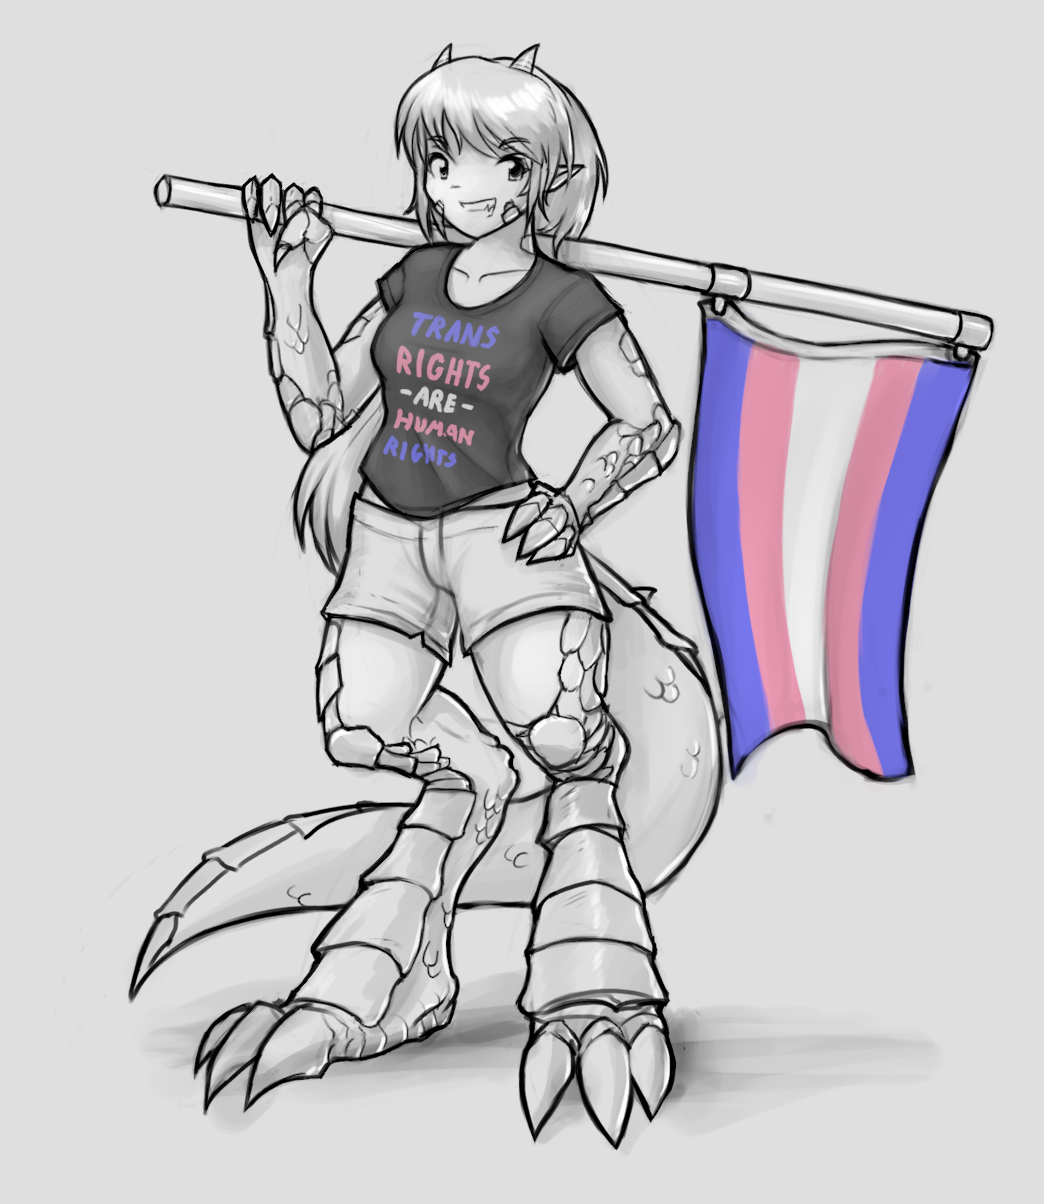 Kei in a Trans Rights are Human Rights shirt